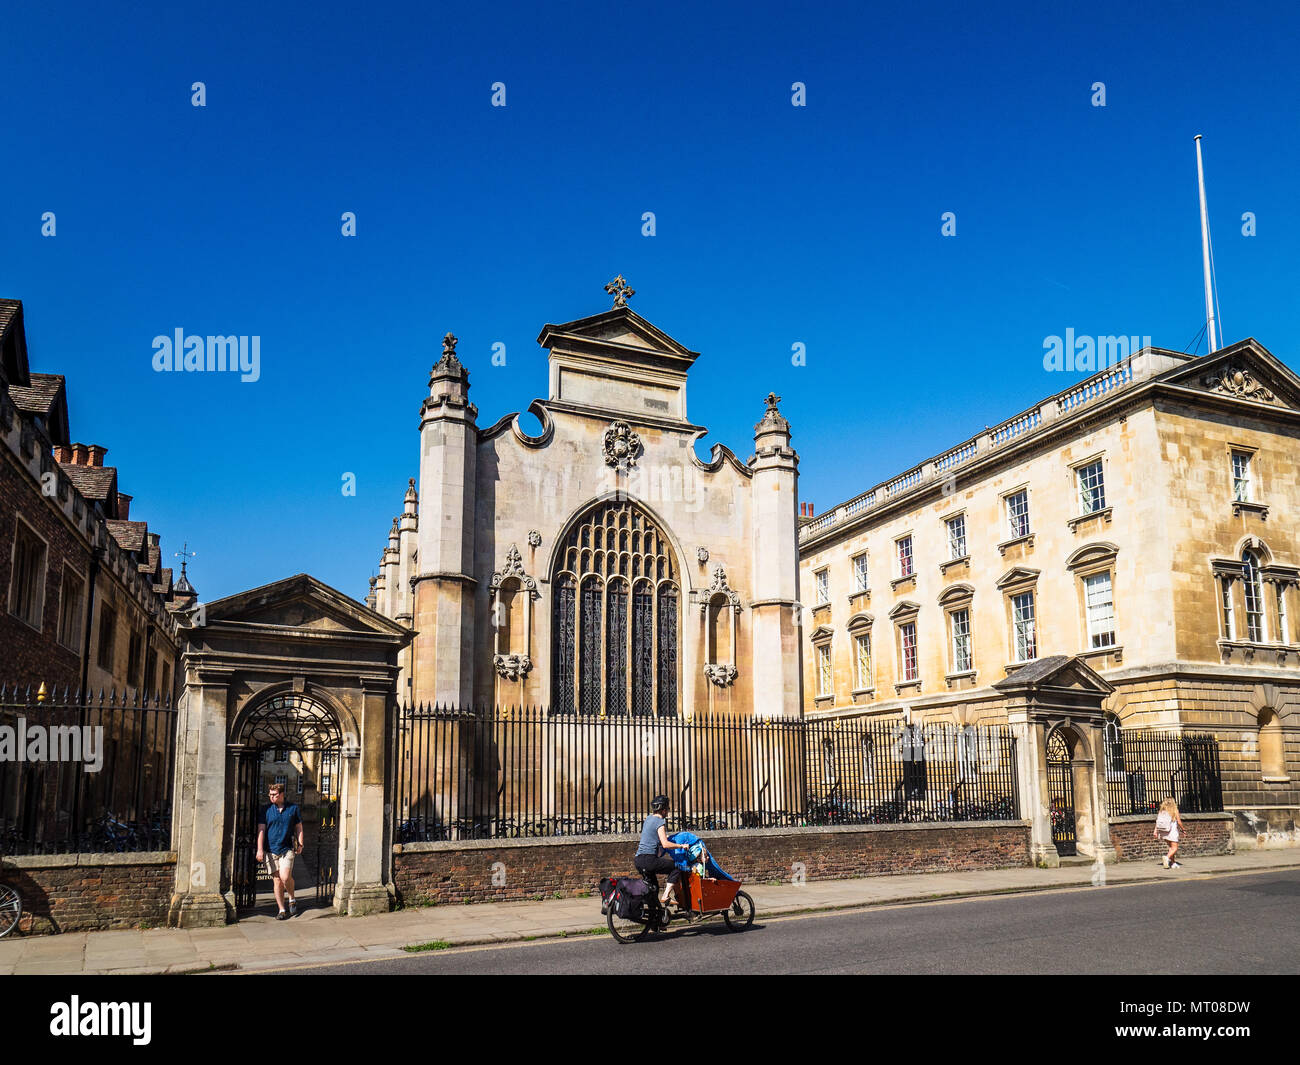 Peterhouse College, Cambridge University, Trumpington Road. Cyclists pass the college entrance and chapel. Peterhouse was founded in 1284. - Stock Image